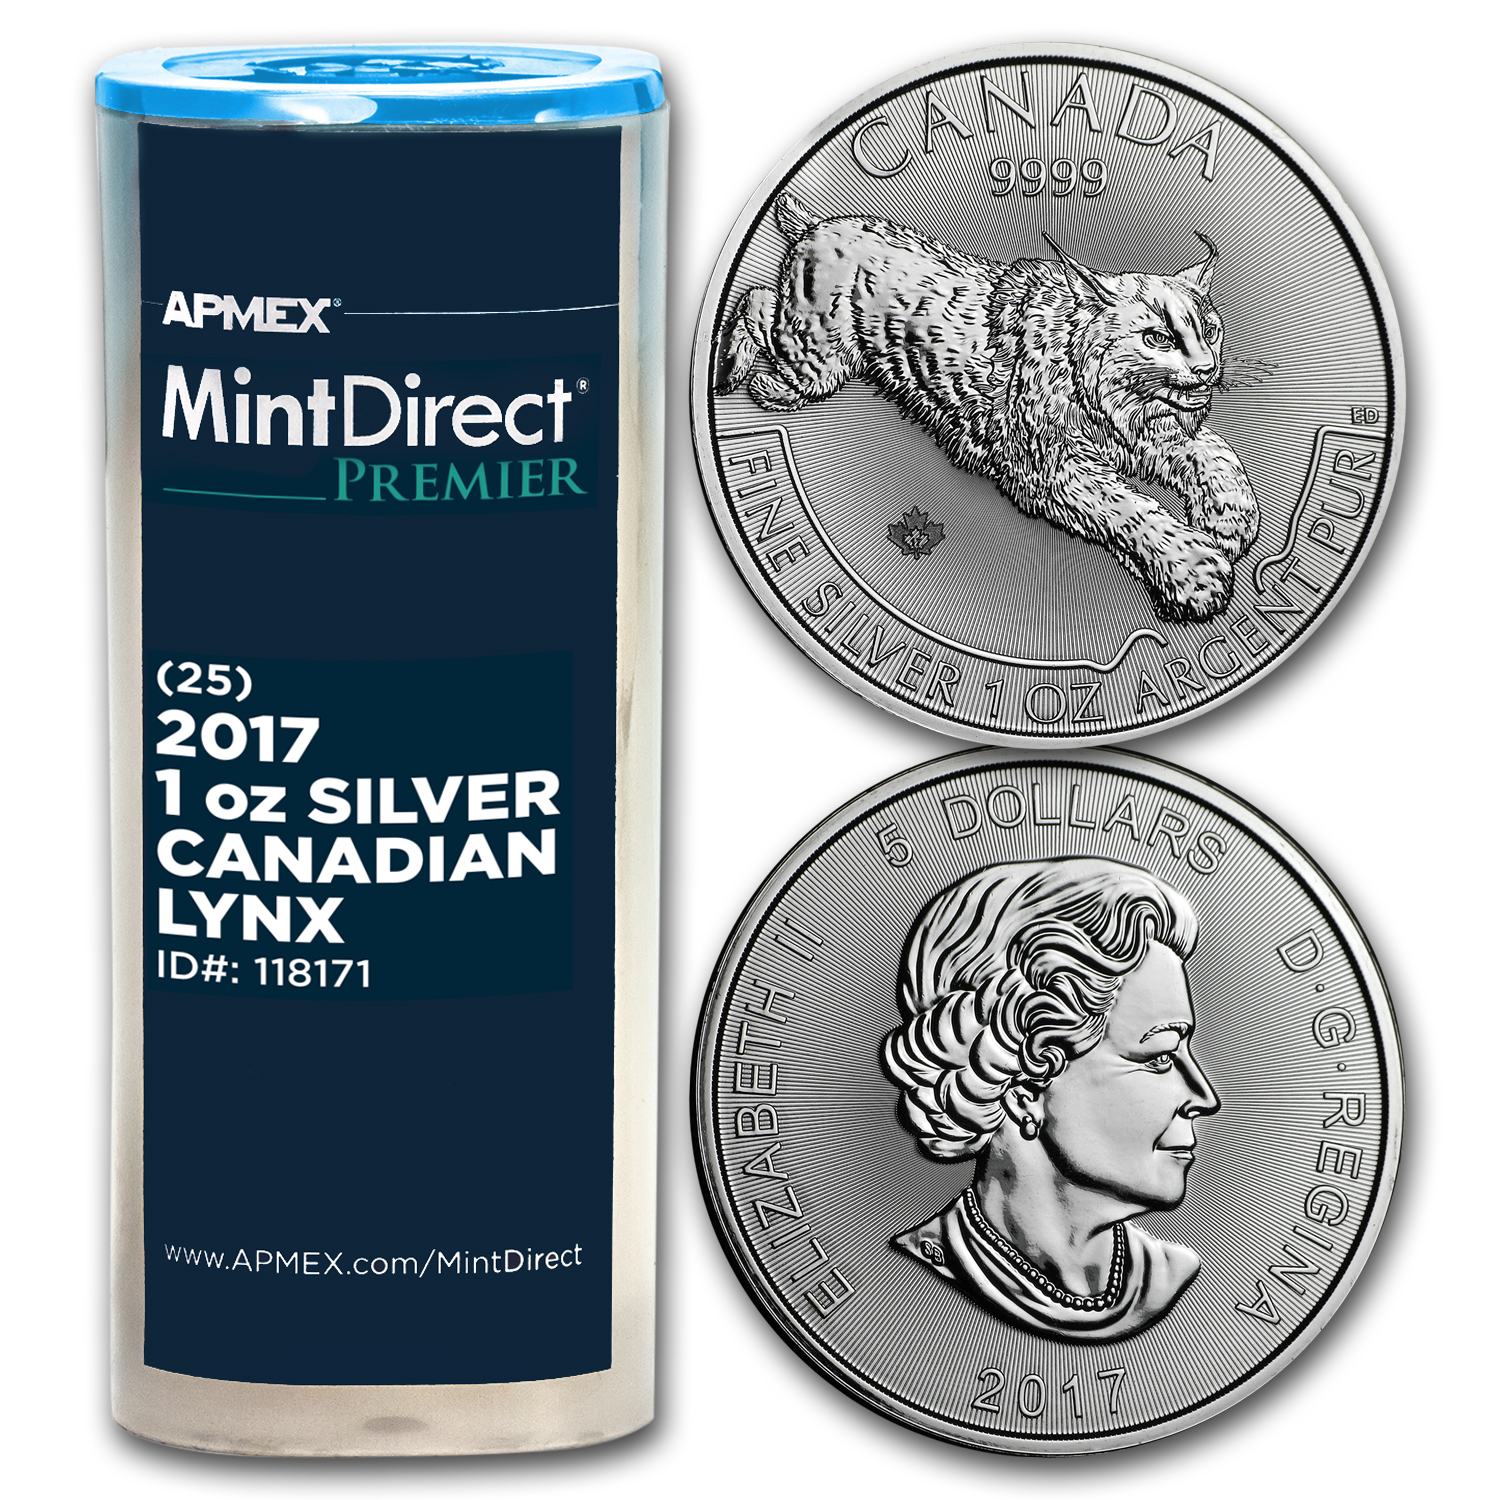 2017 Canada 1 oz Silver Lynx (25-Coin MintDirect® Premier Tube)